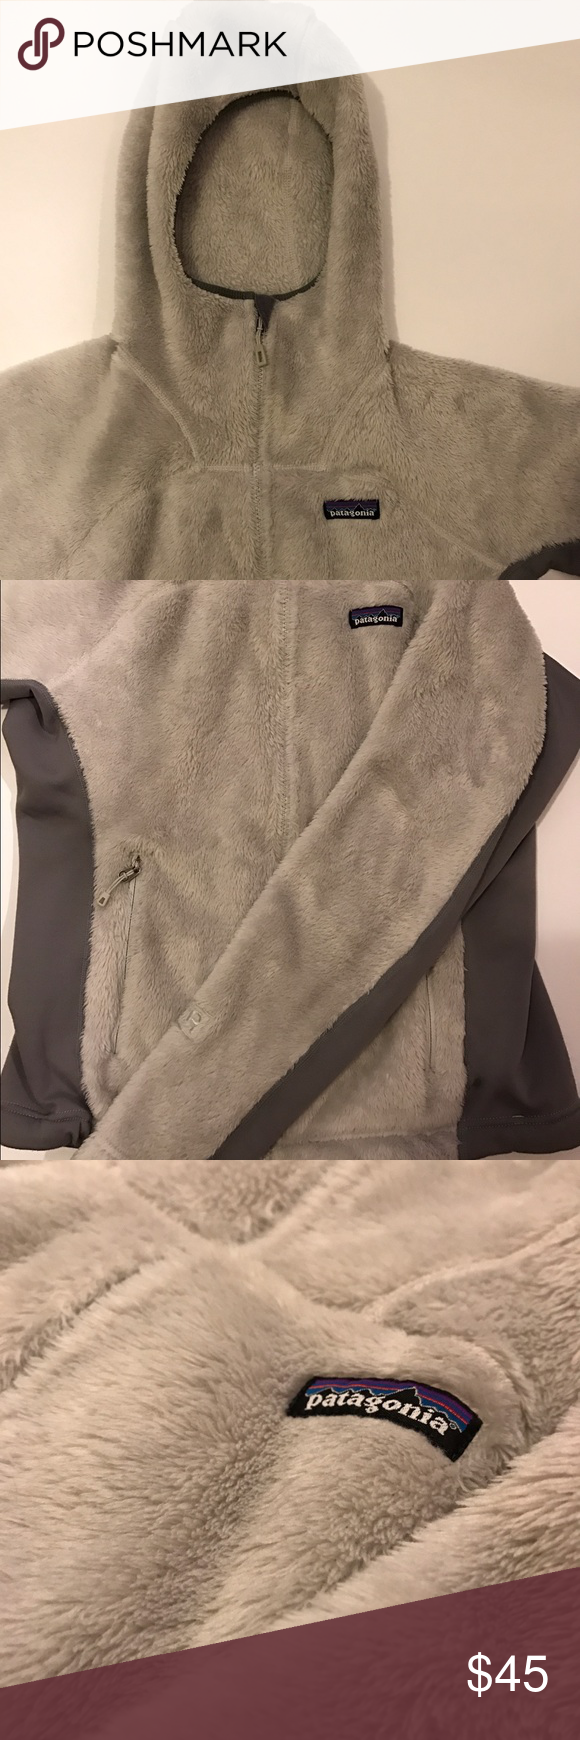 Patagonia fur zip up Extremely cozy faux fur zip up by Patagonia. Very warm and soft- wear as a primary jacket or layer underneath for additional warmth. The hood is great as well because it stays secure on your head and provides additional insulation when needed. Small blemish (pictured) on the right side Patagonia Tops Sweatshirts & Hoodies